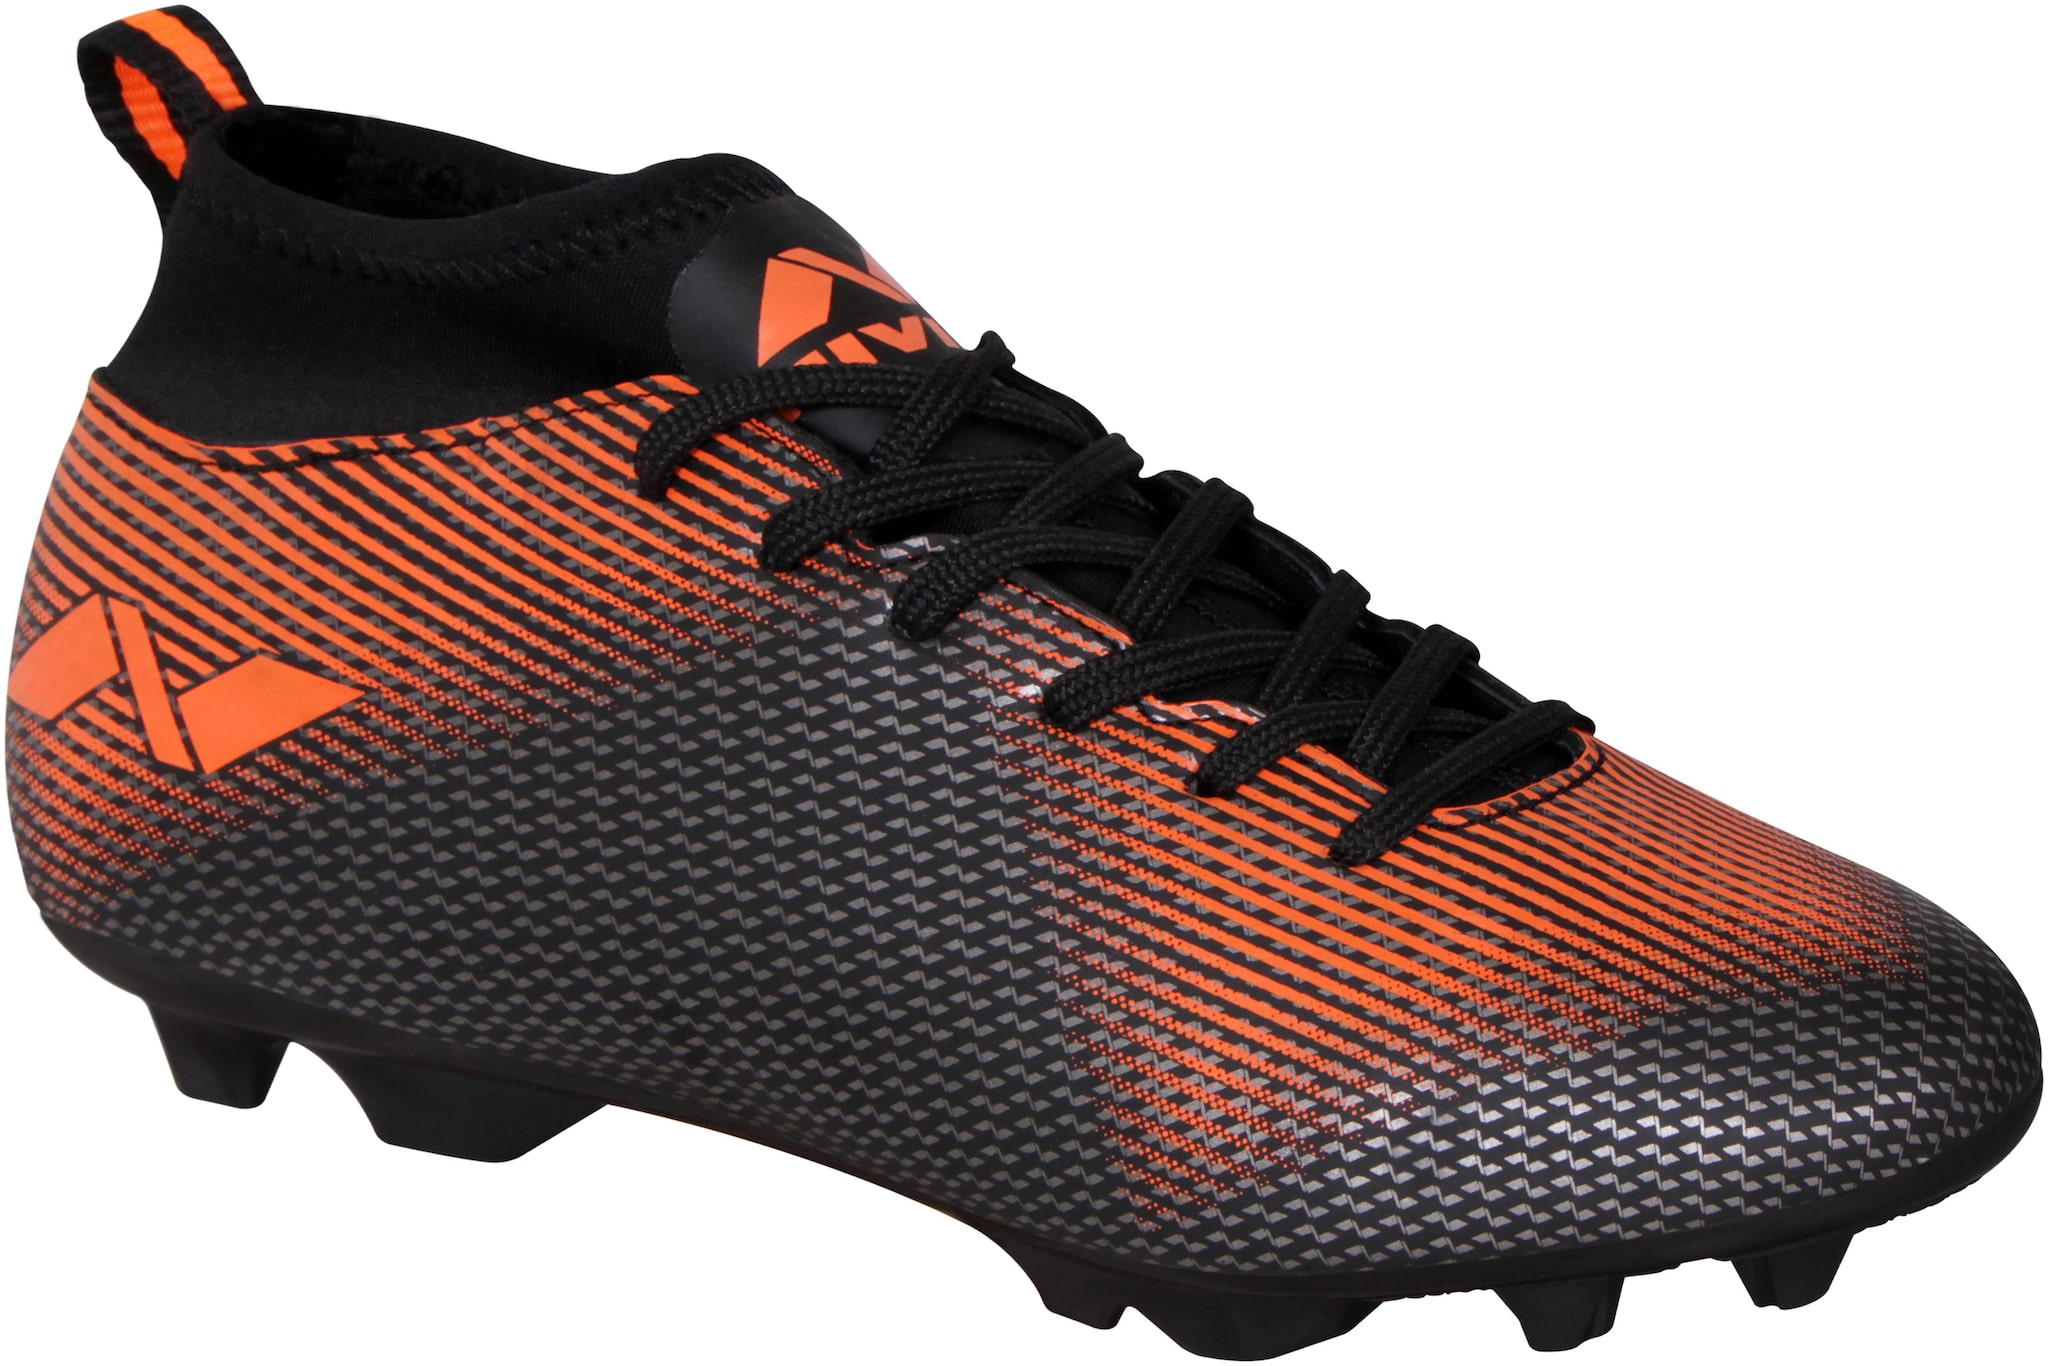 Nivia Pro Carbonite with Collar Rib Football Shoes For Men by D And O Ventures